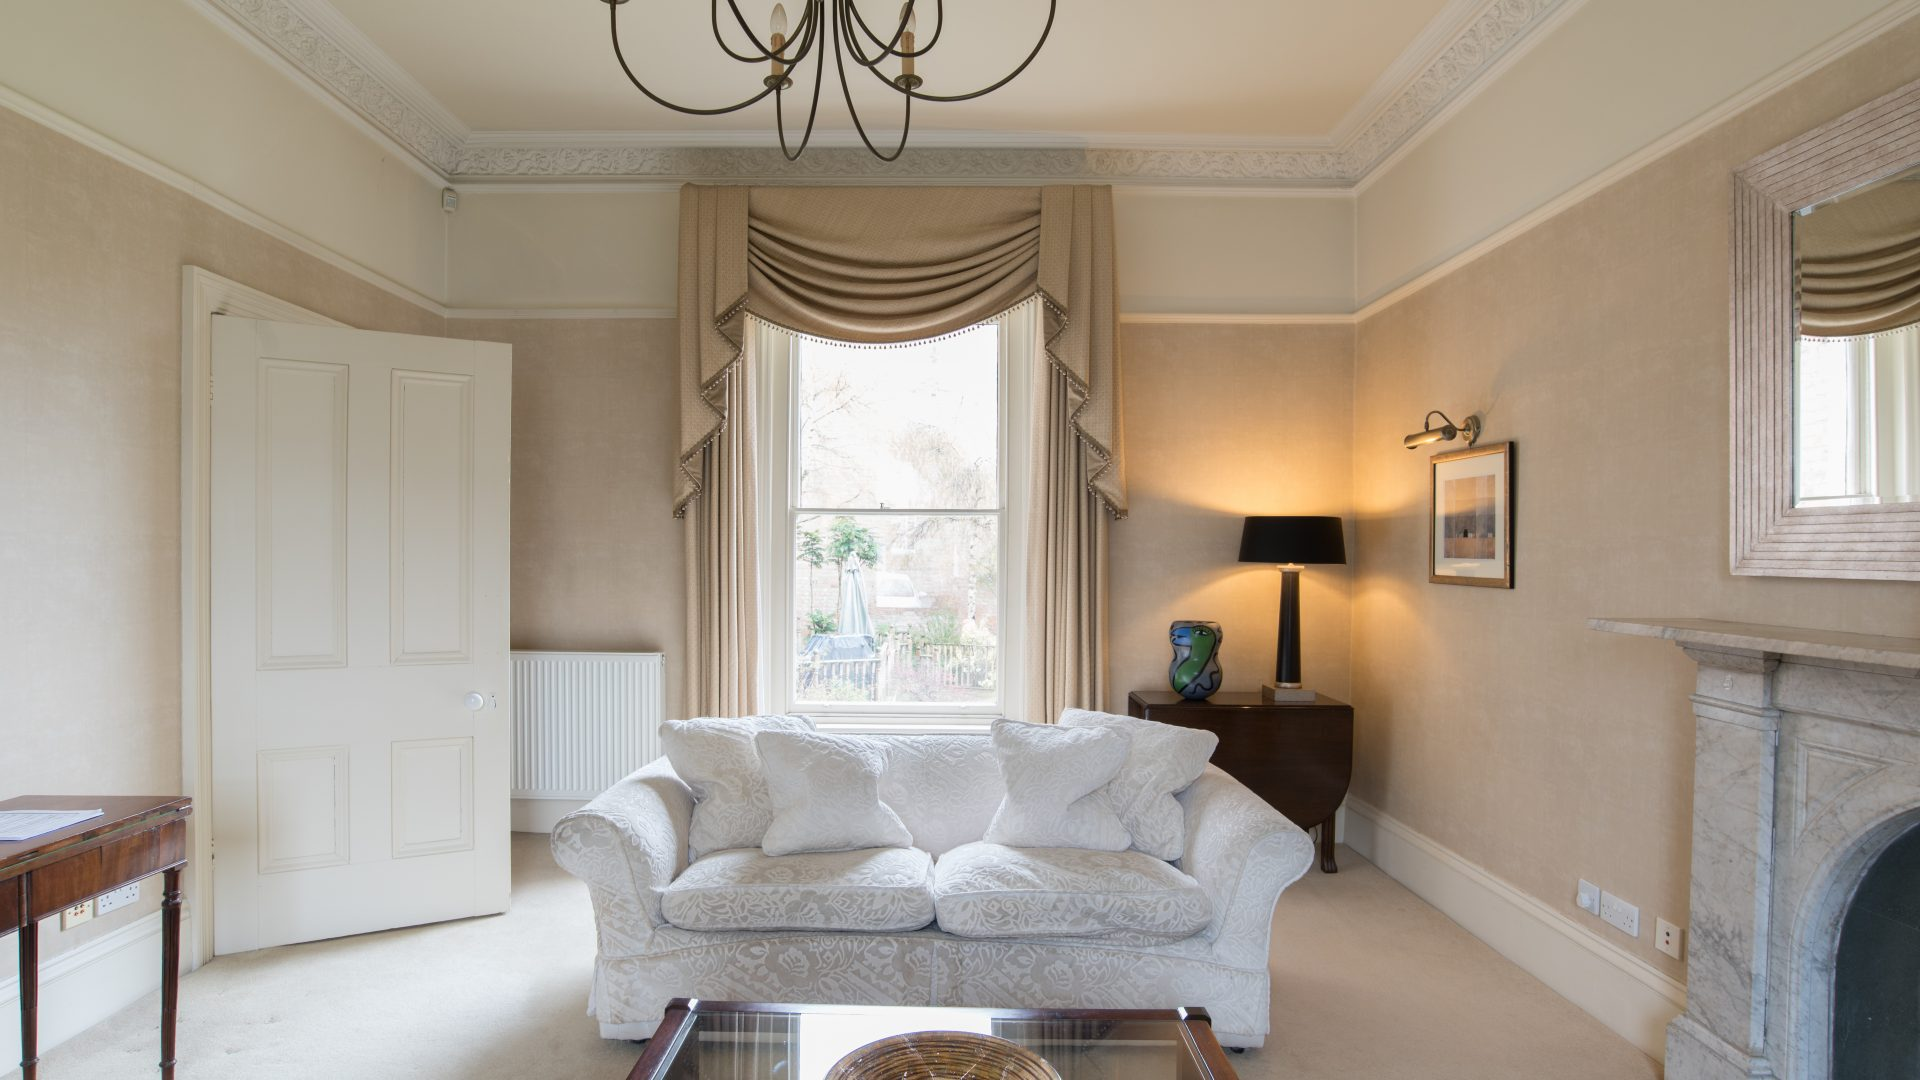 Binswood Avenue, Leamington Spa for sale with Mr and Mrs Clarke estate agent